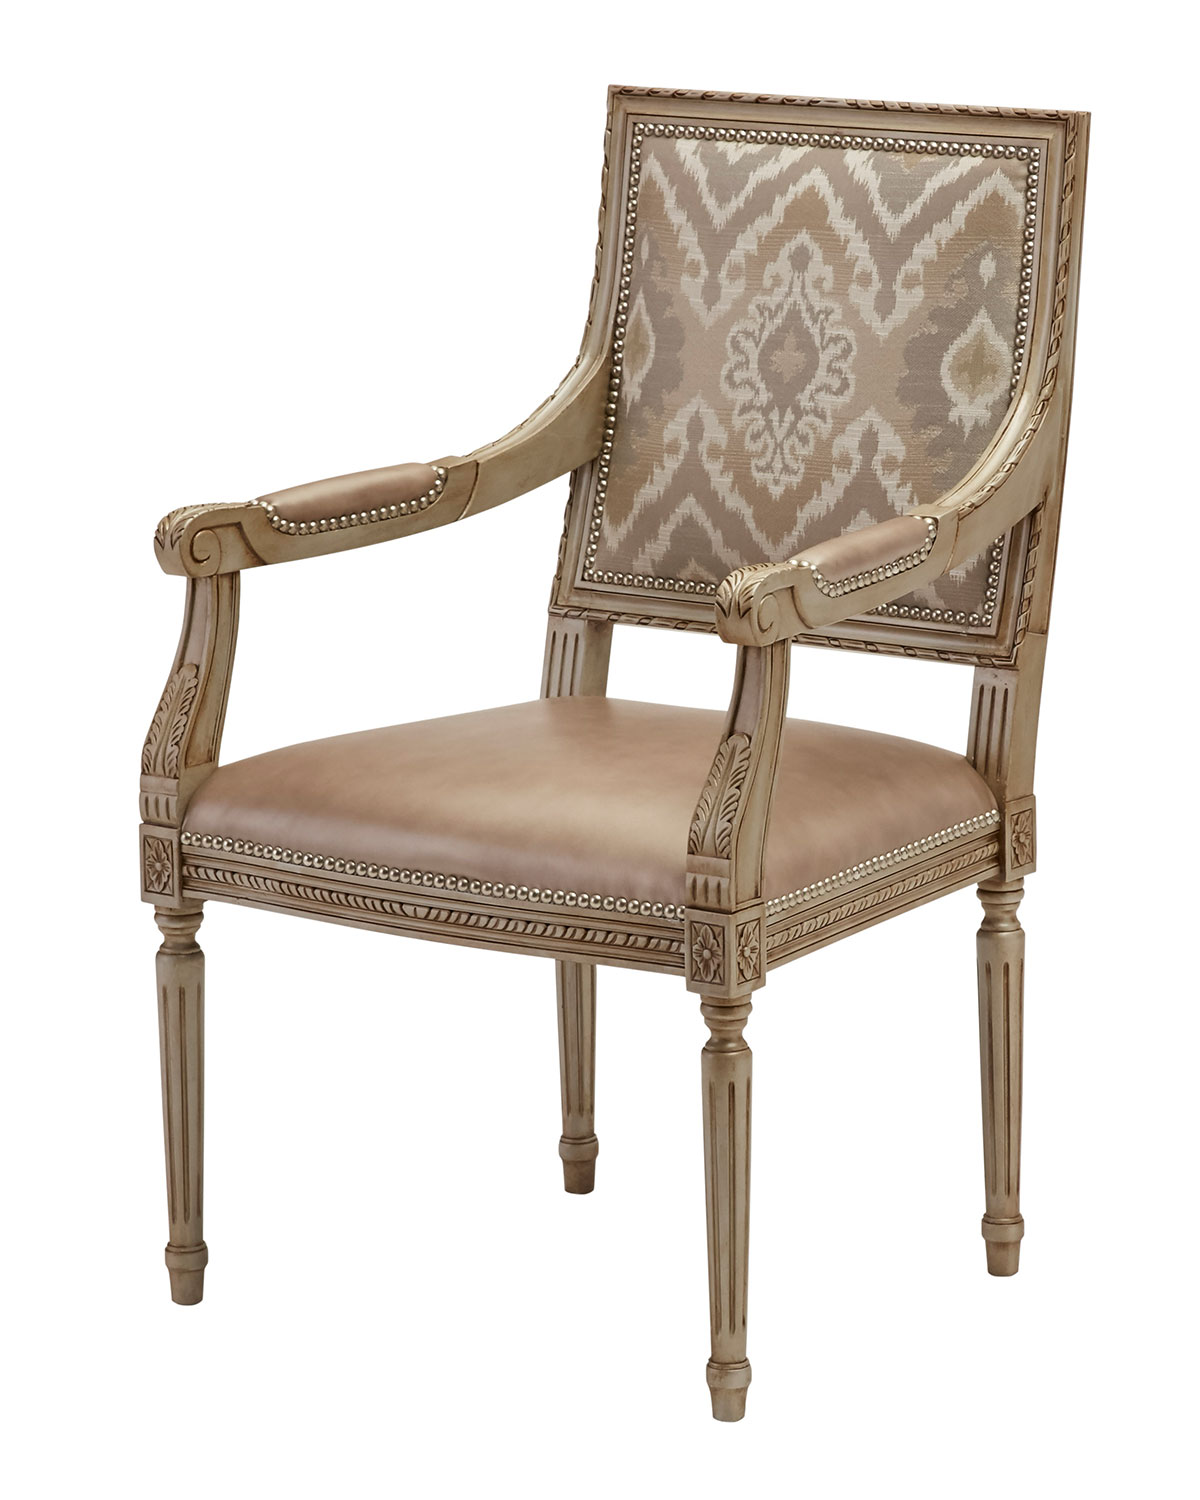 OneofaKind Arm Chair